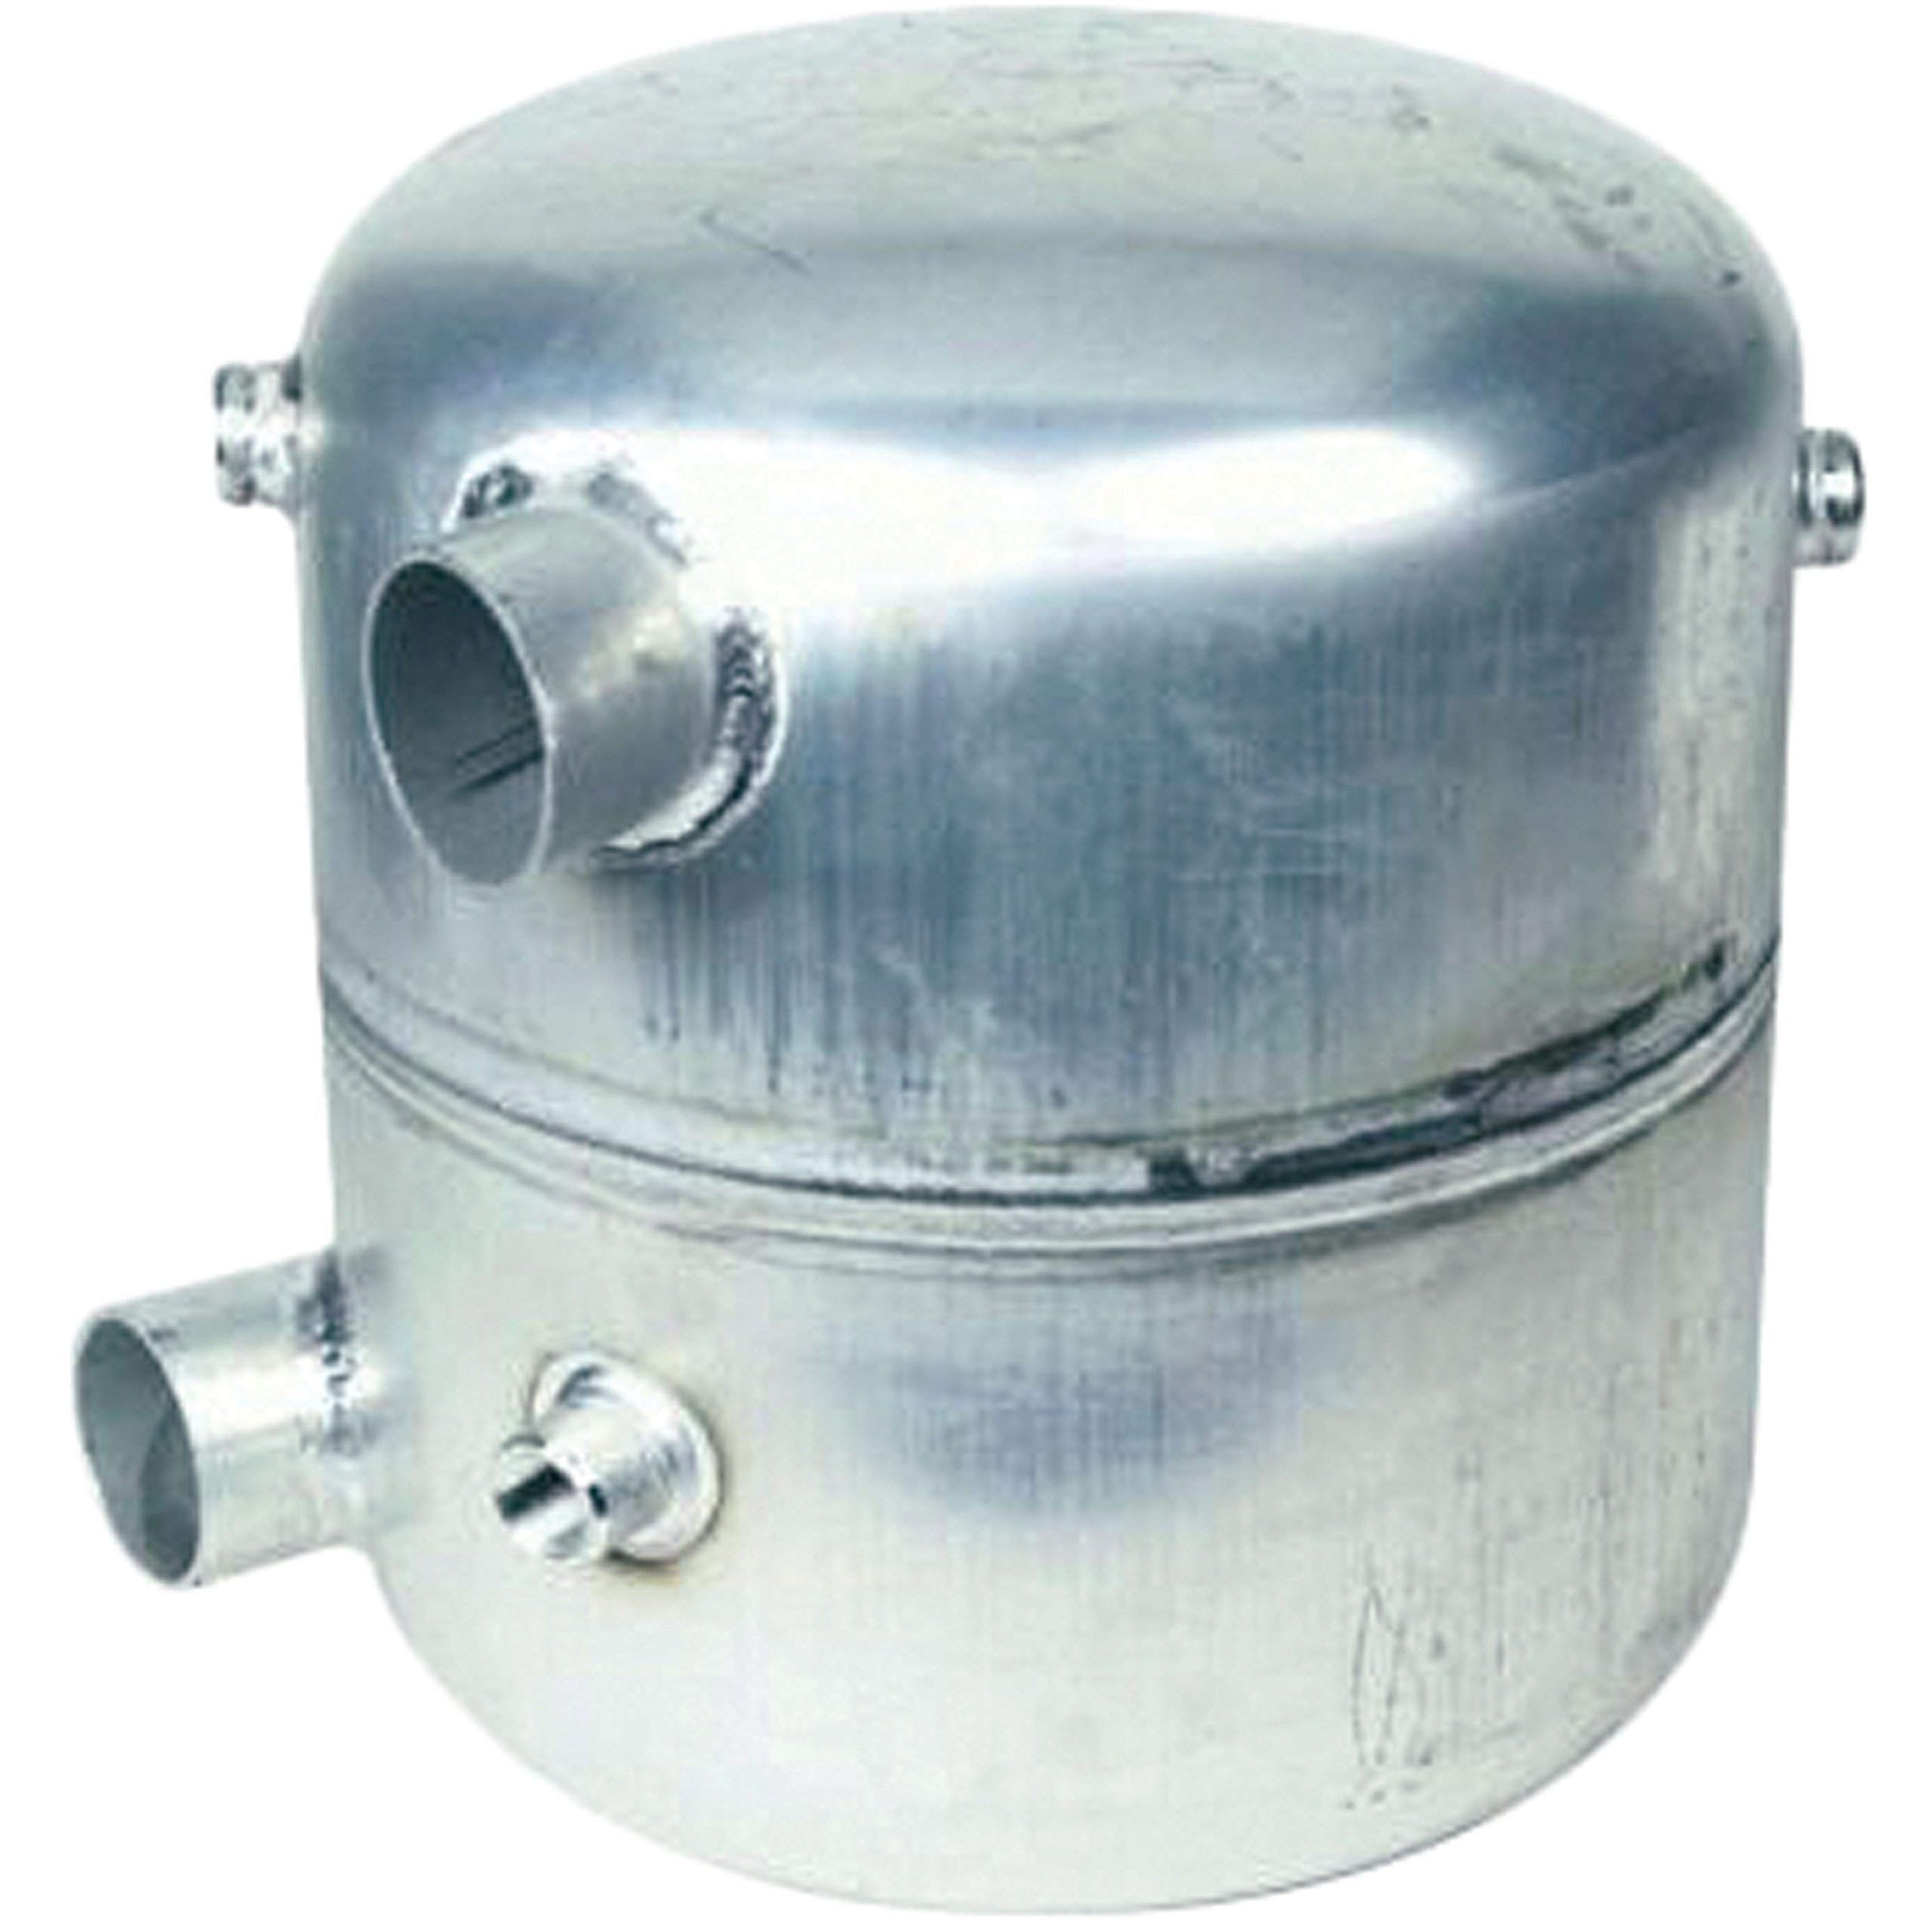 Atwood 91593 Replacement Inner Water Heater Tank - GC6AA-7E & GC6AA-8E by Atwood (Image #1)